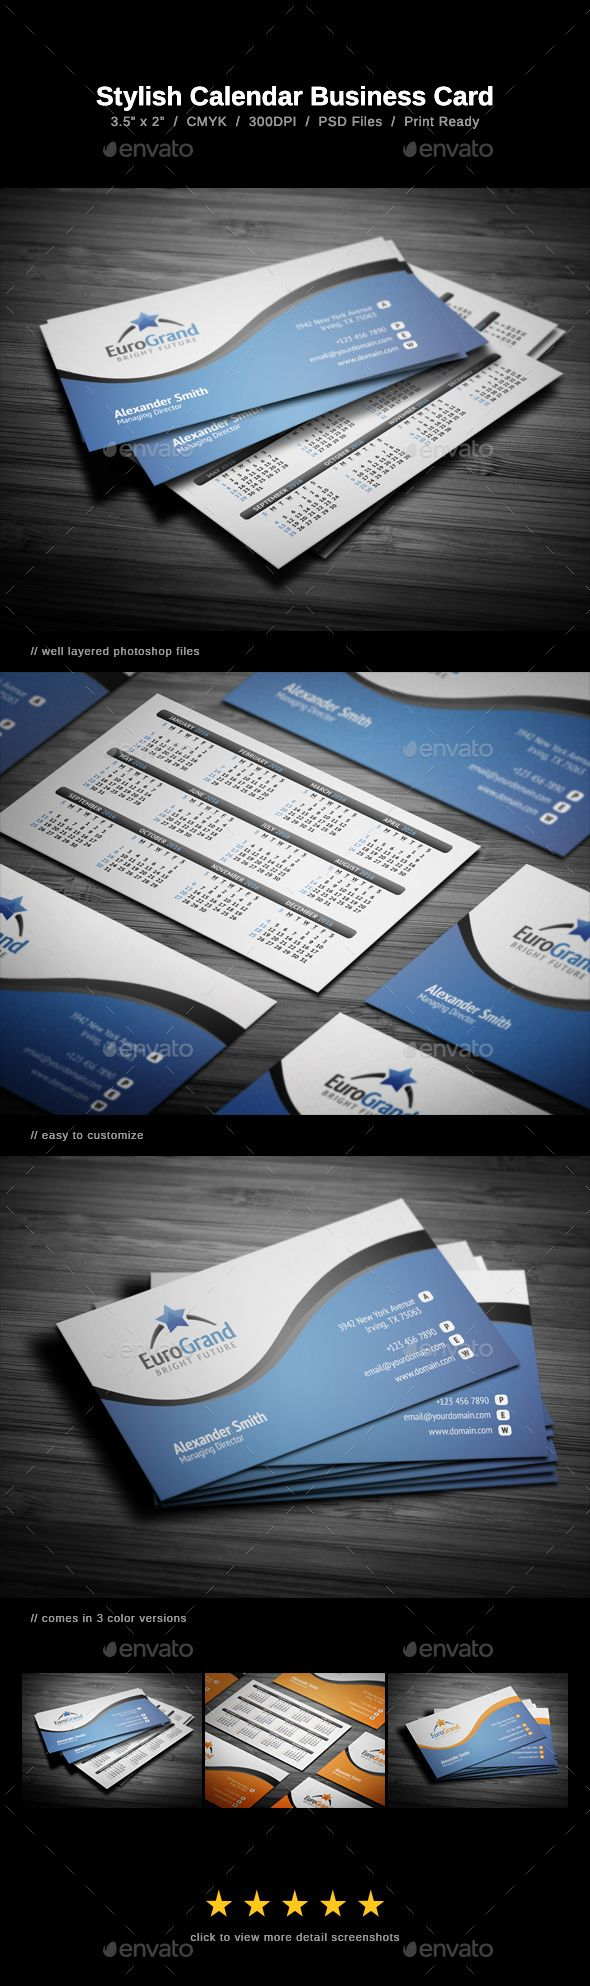 Stylish calendar business card pinterest business cards stylish calendar business card calendar template psd download here httpgraphicriveritemstylish calendar business card1515162srank639ref reheart Image collections